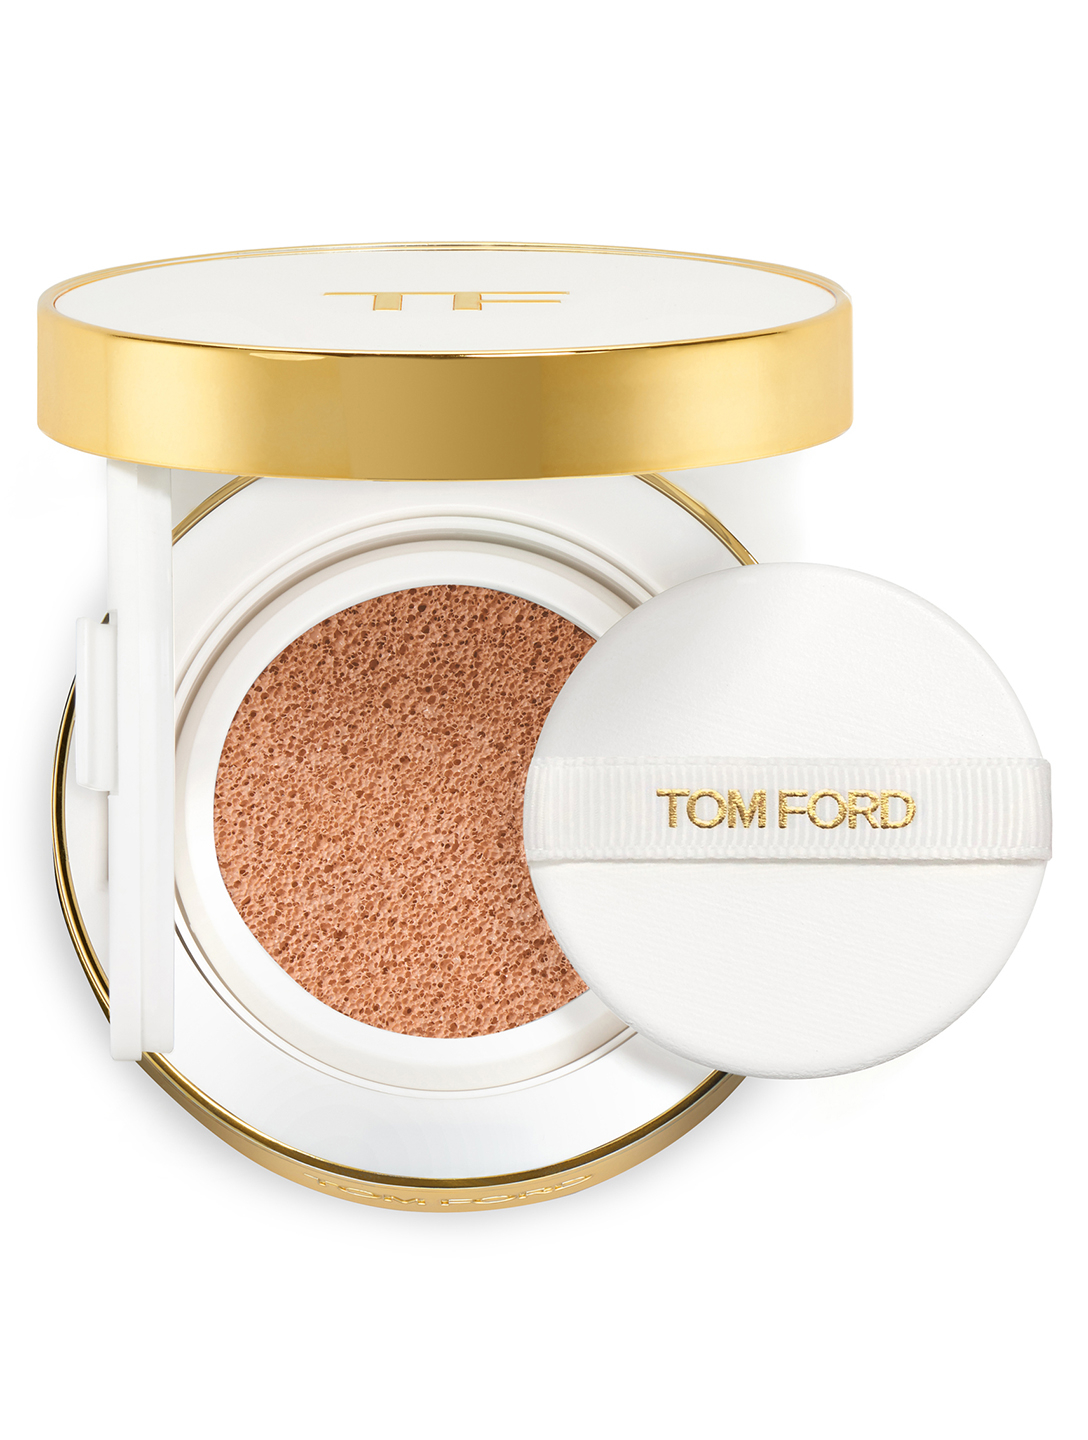 TOM FORD Fond de teint éclat bonne mine cushion compact hydratant FPS 45 Beauté Écru